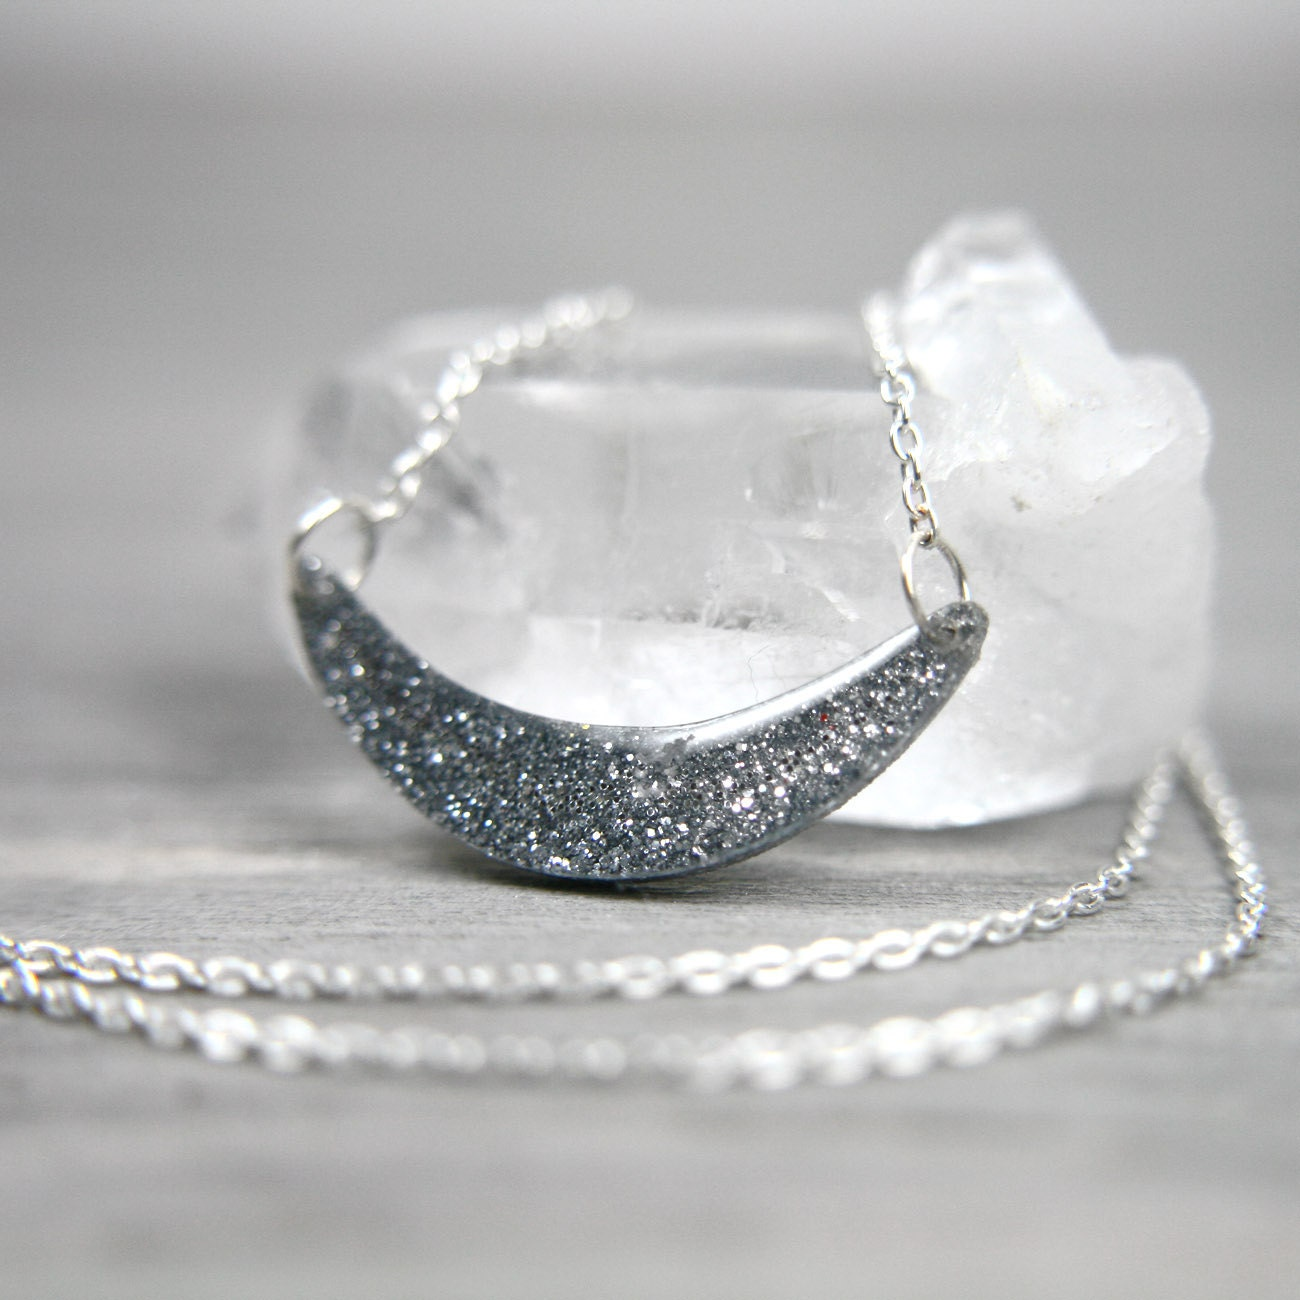 sterling necklace with sparkly silver bend - tinygalaxies